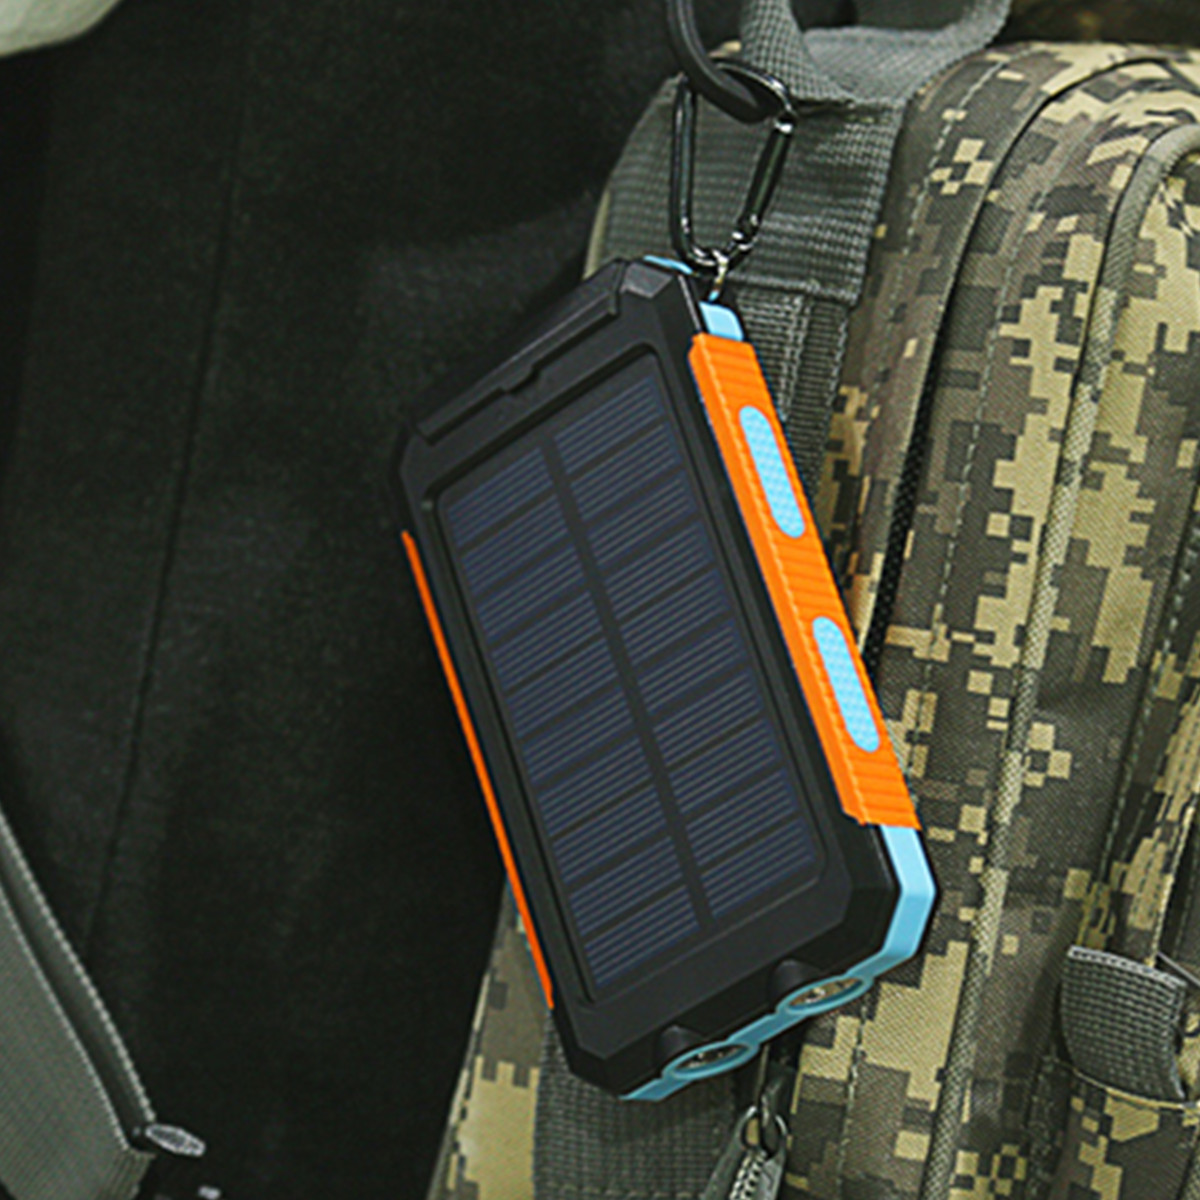 20000mAh DIY Power Bank Portable Solar Charger Case Compass Flashlight Dual USB Port for Cellphone